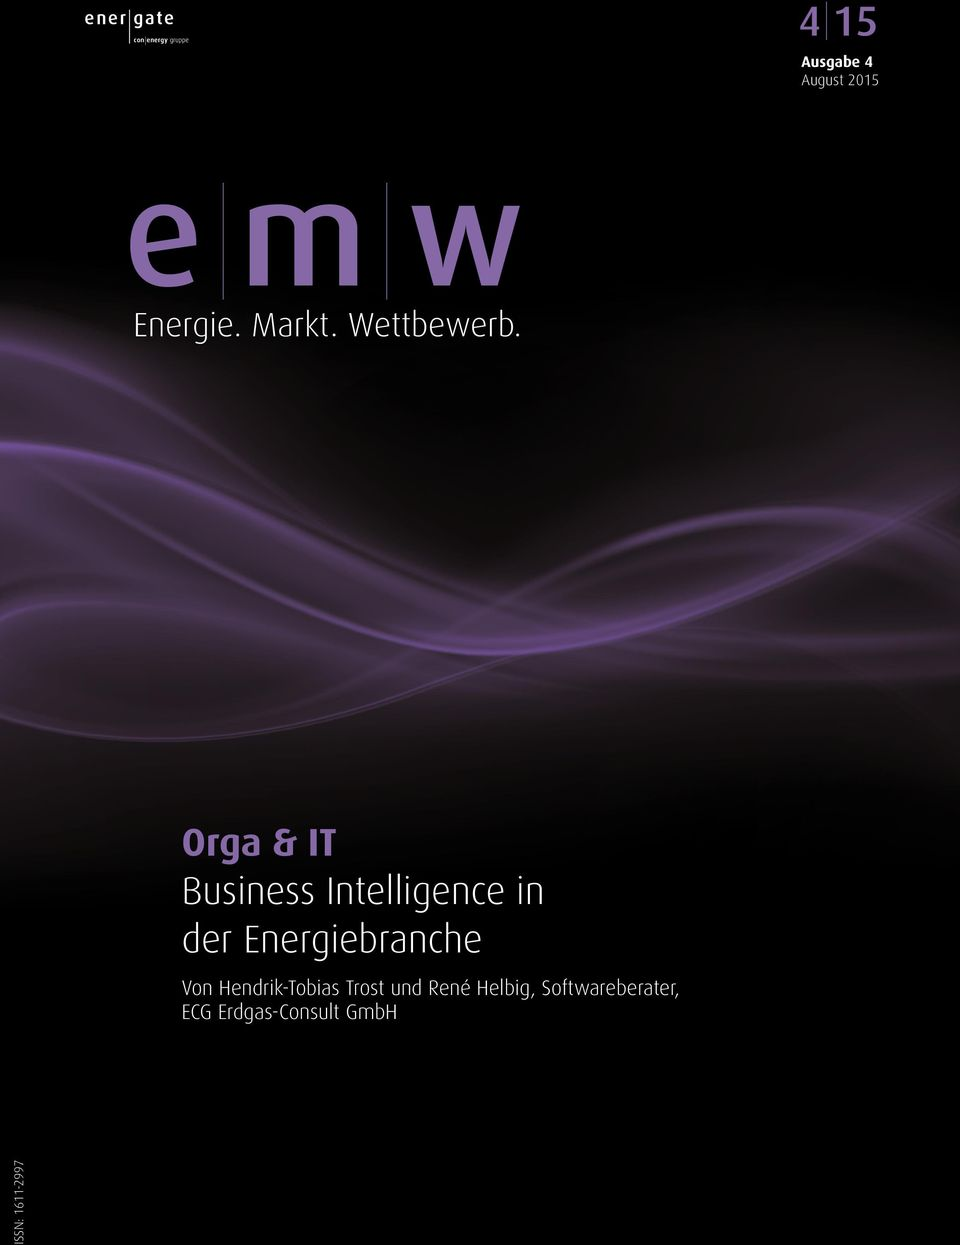 Orga & IT Business Intelligence in der